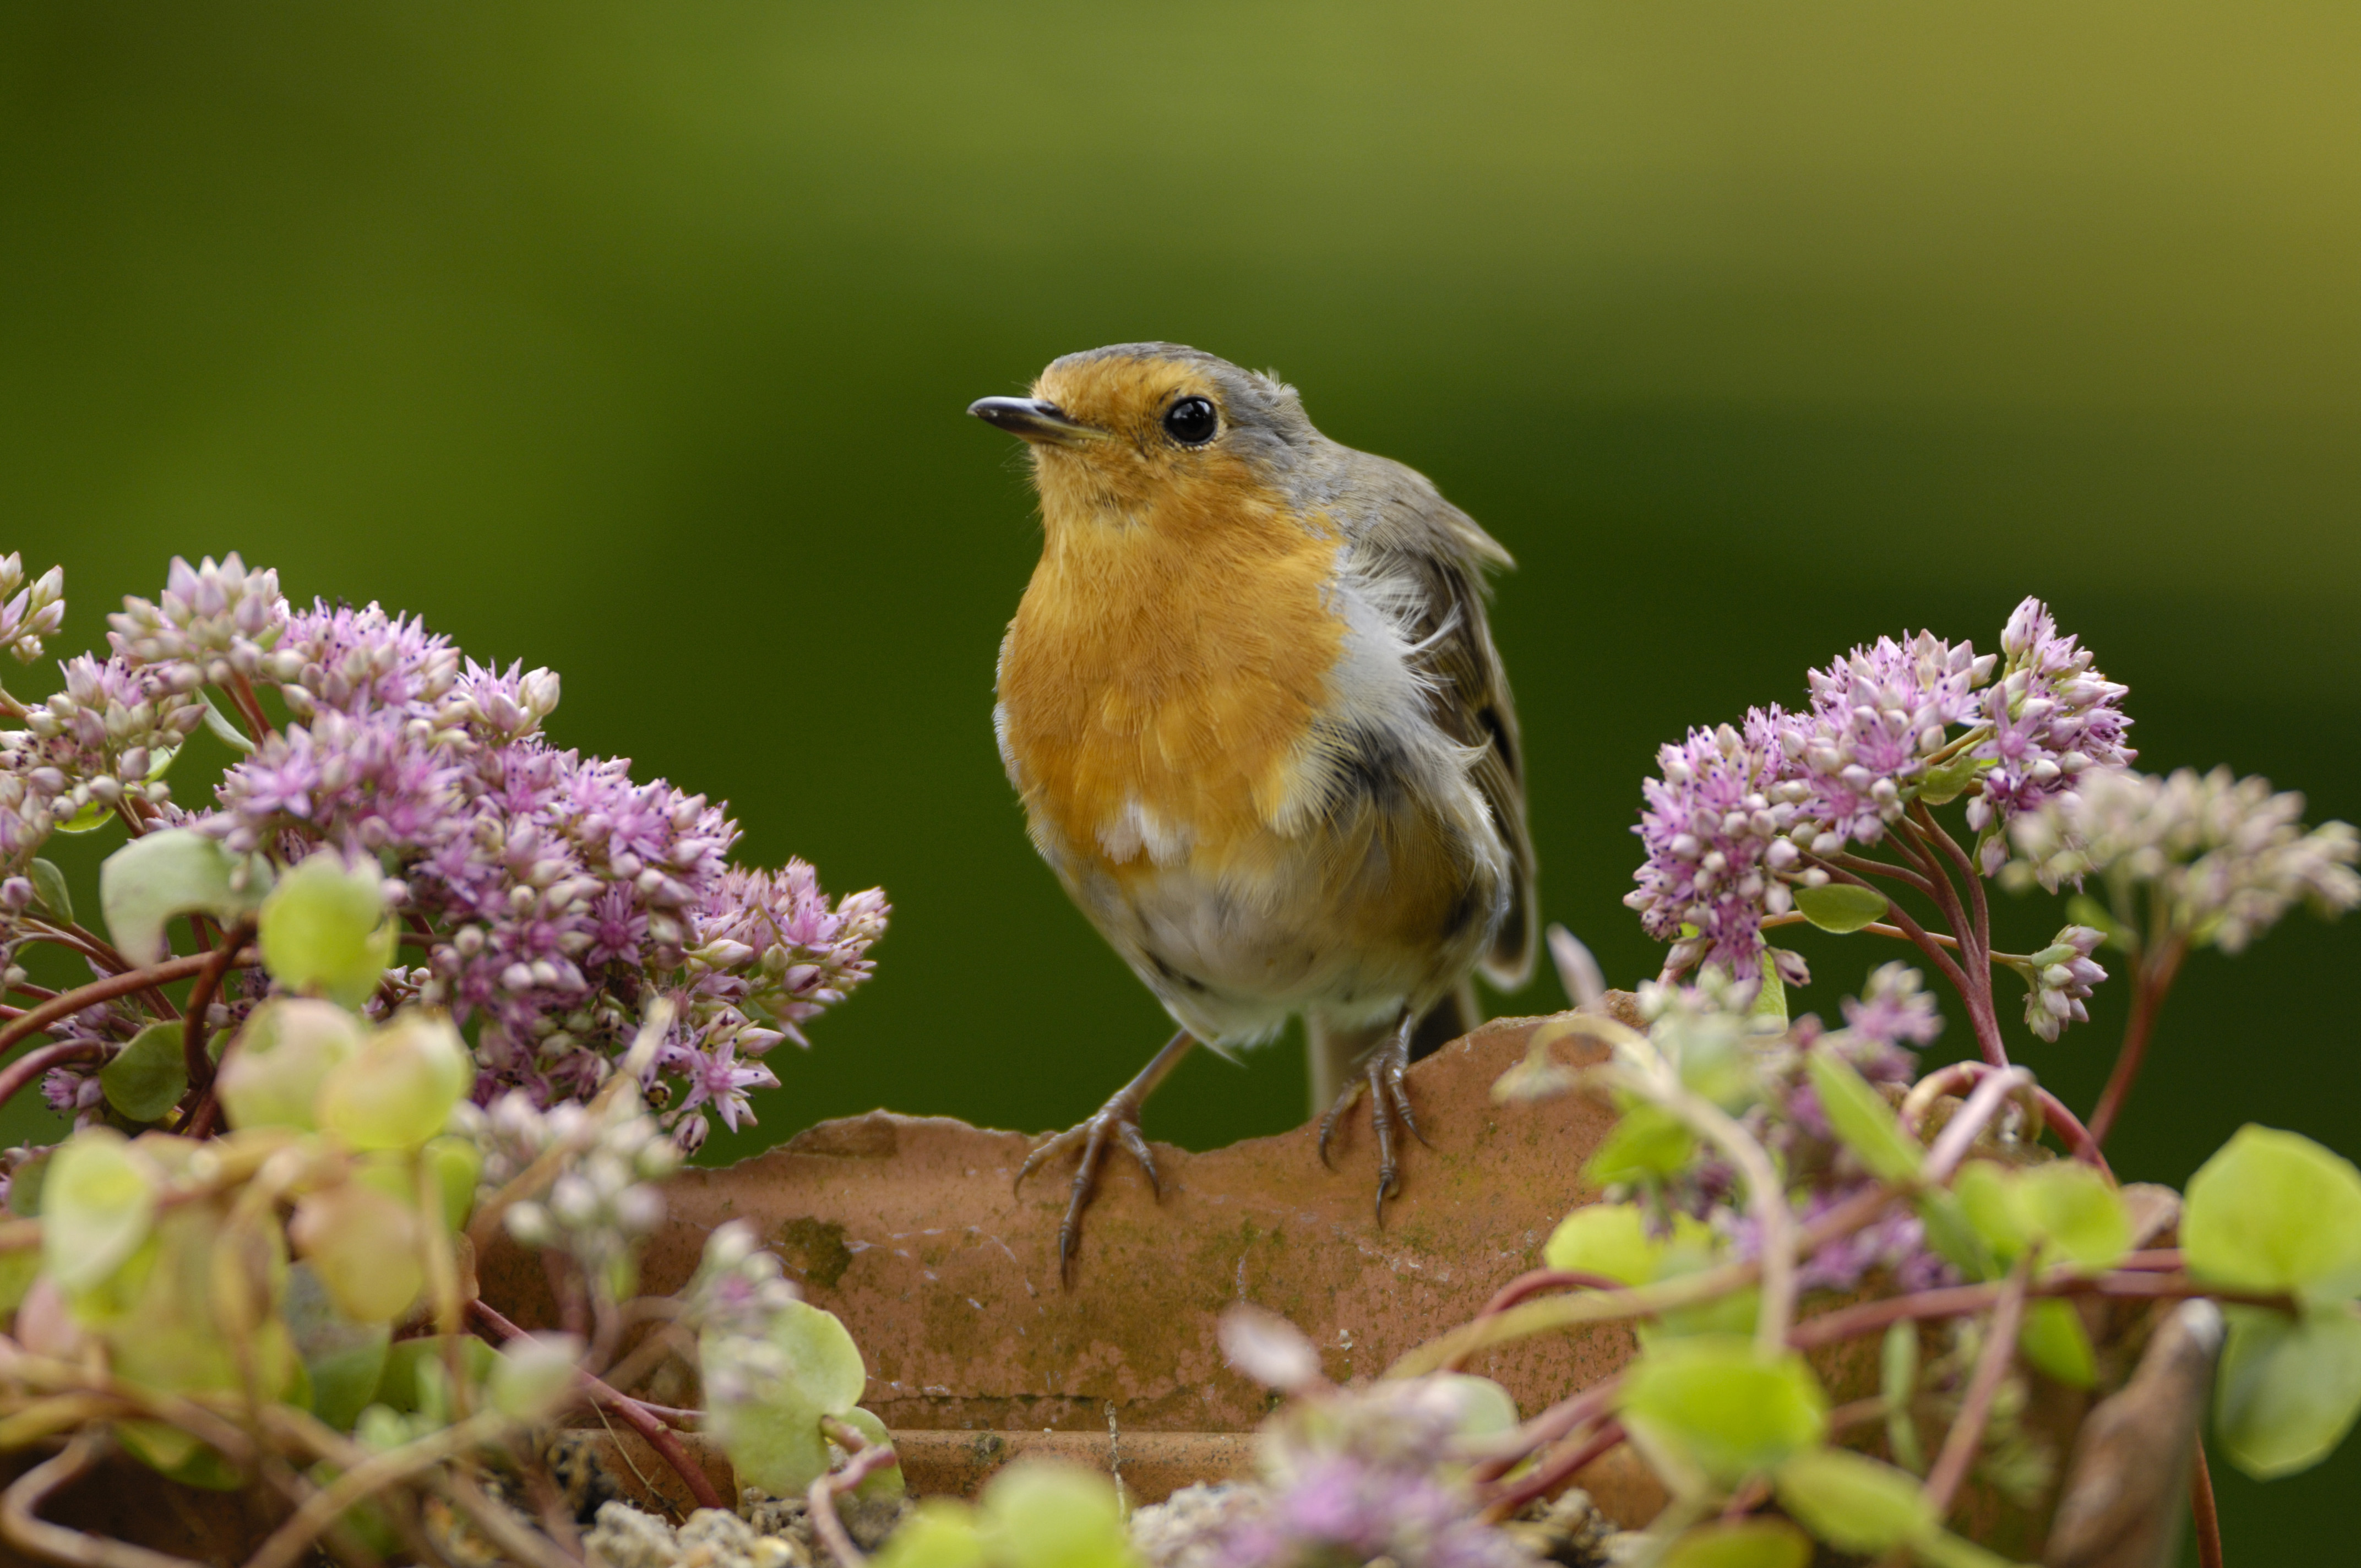 About Robins | Learn About Birds - The RSPB